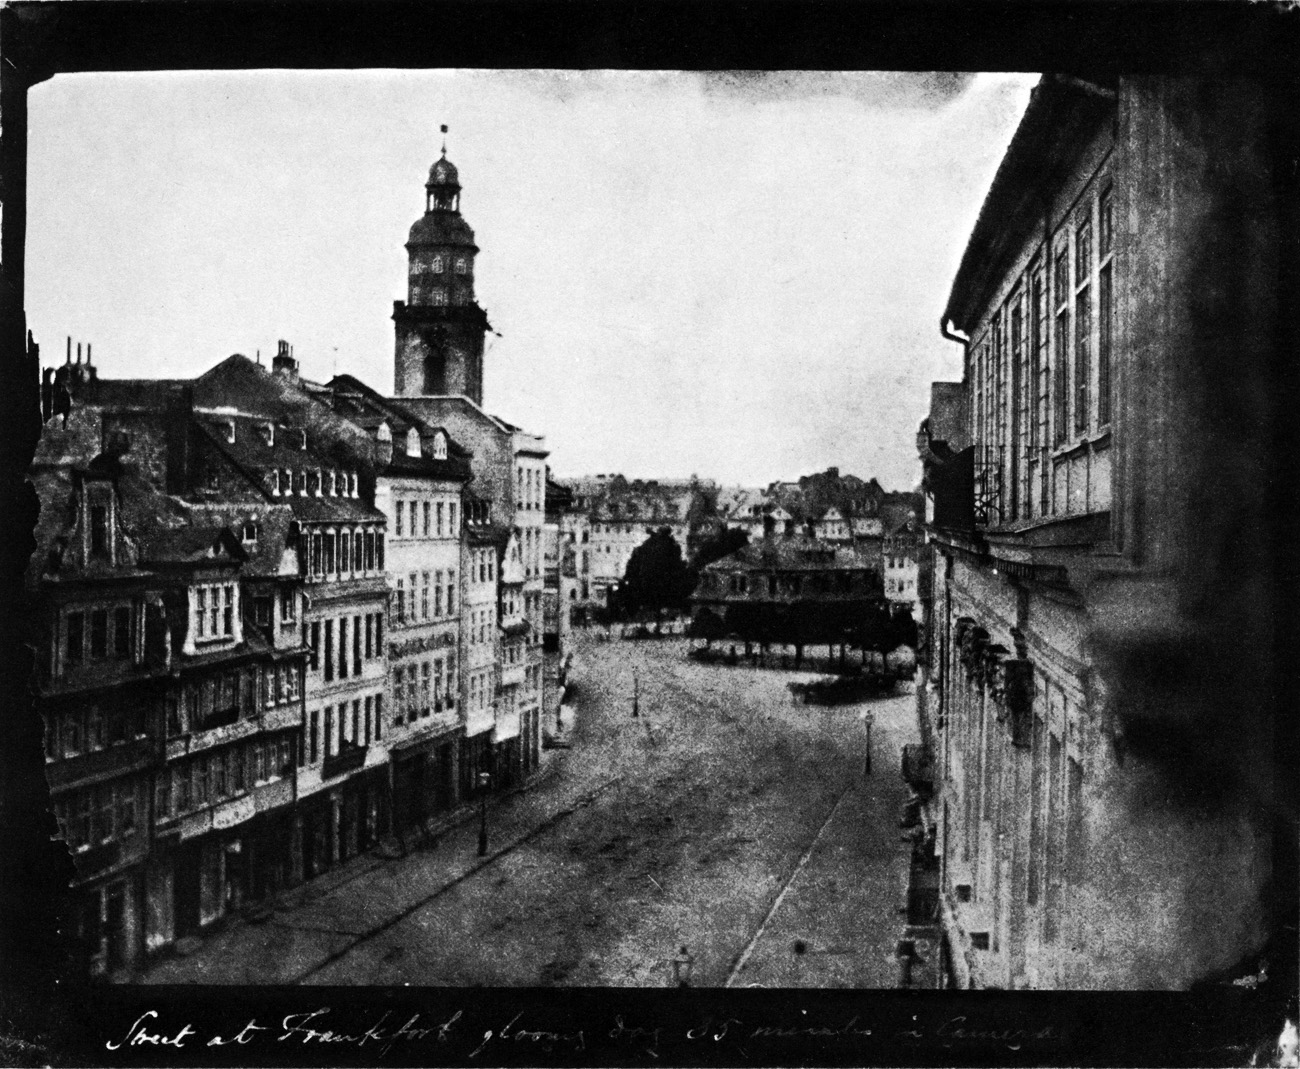 Kirjeldus Frankfurt Am Main-William Henry Fox Talbot-Zeil in Richtung